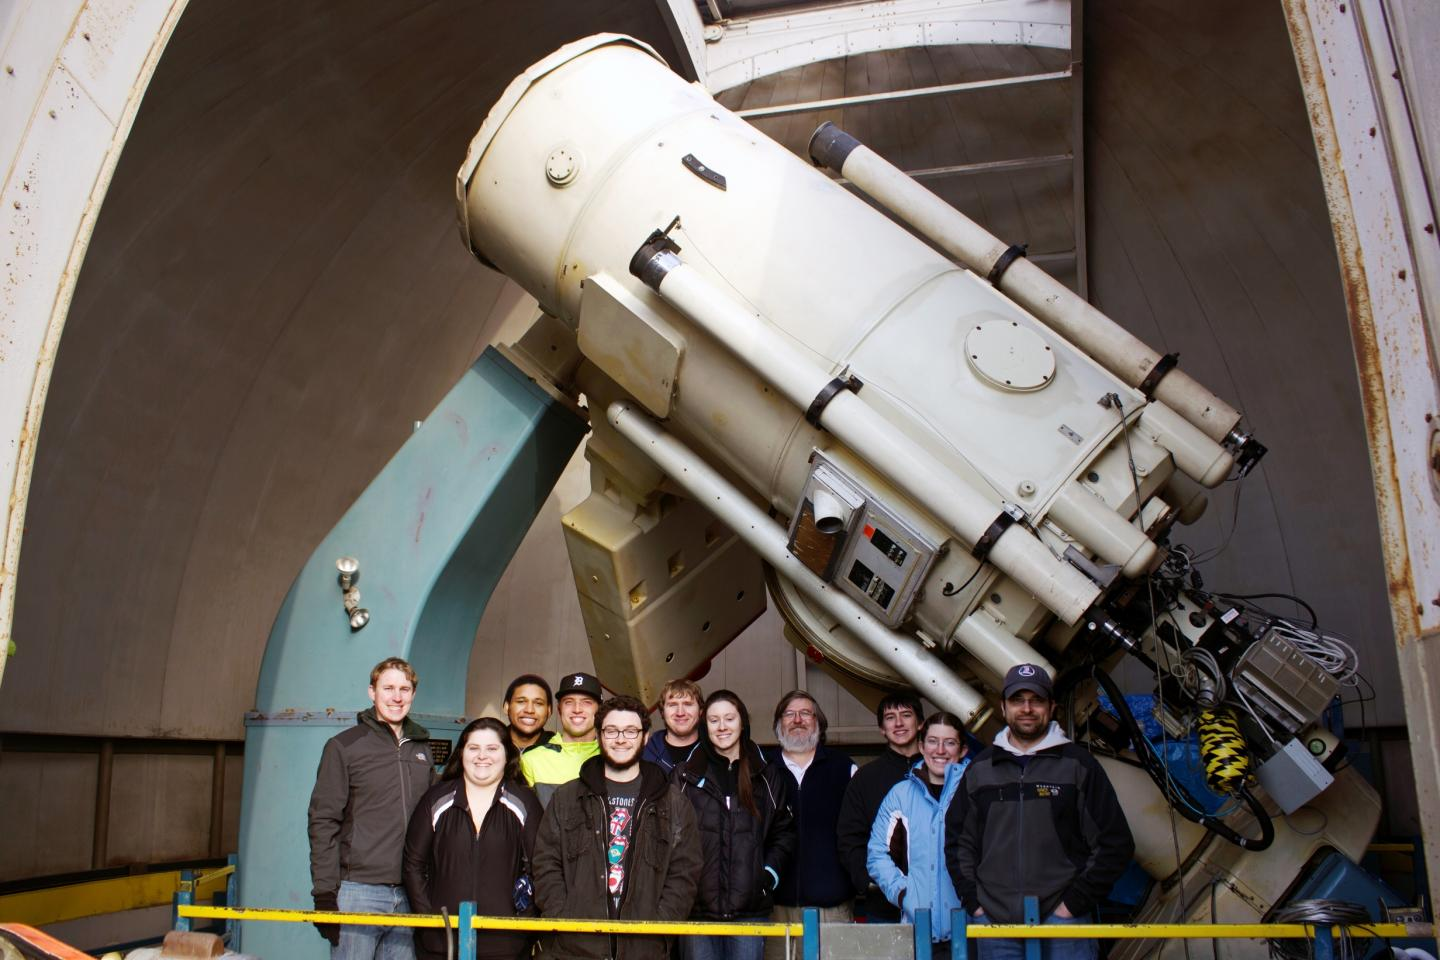 The observing team (students from Physics and Astronomy department) from University of Toledo.